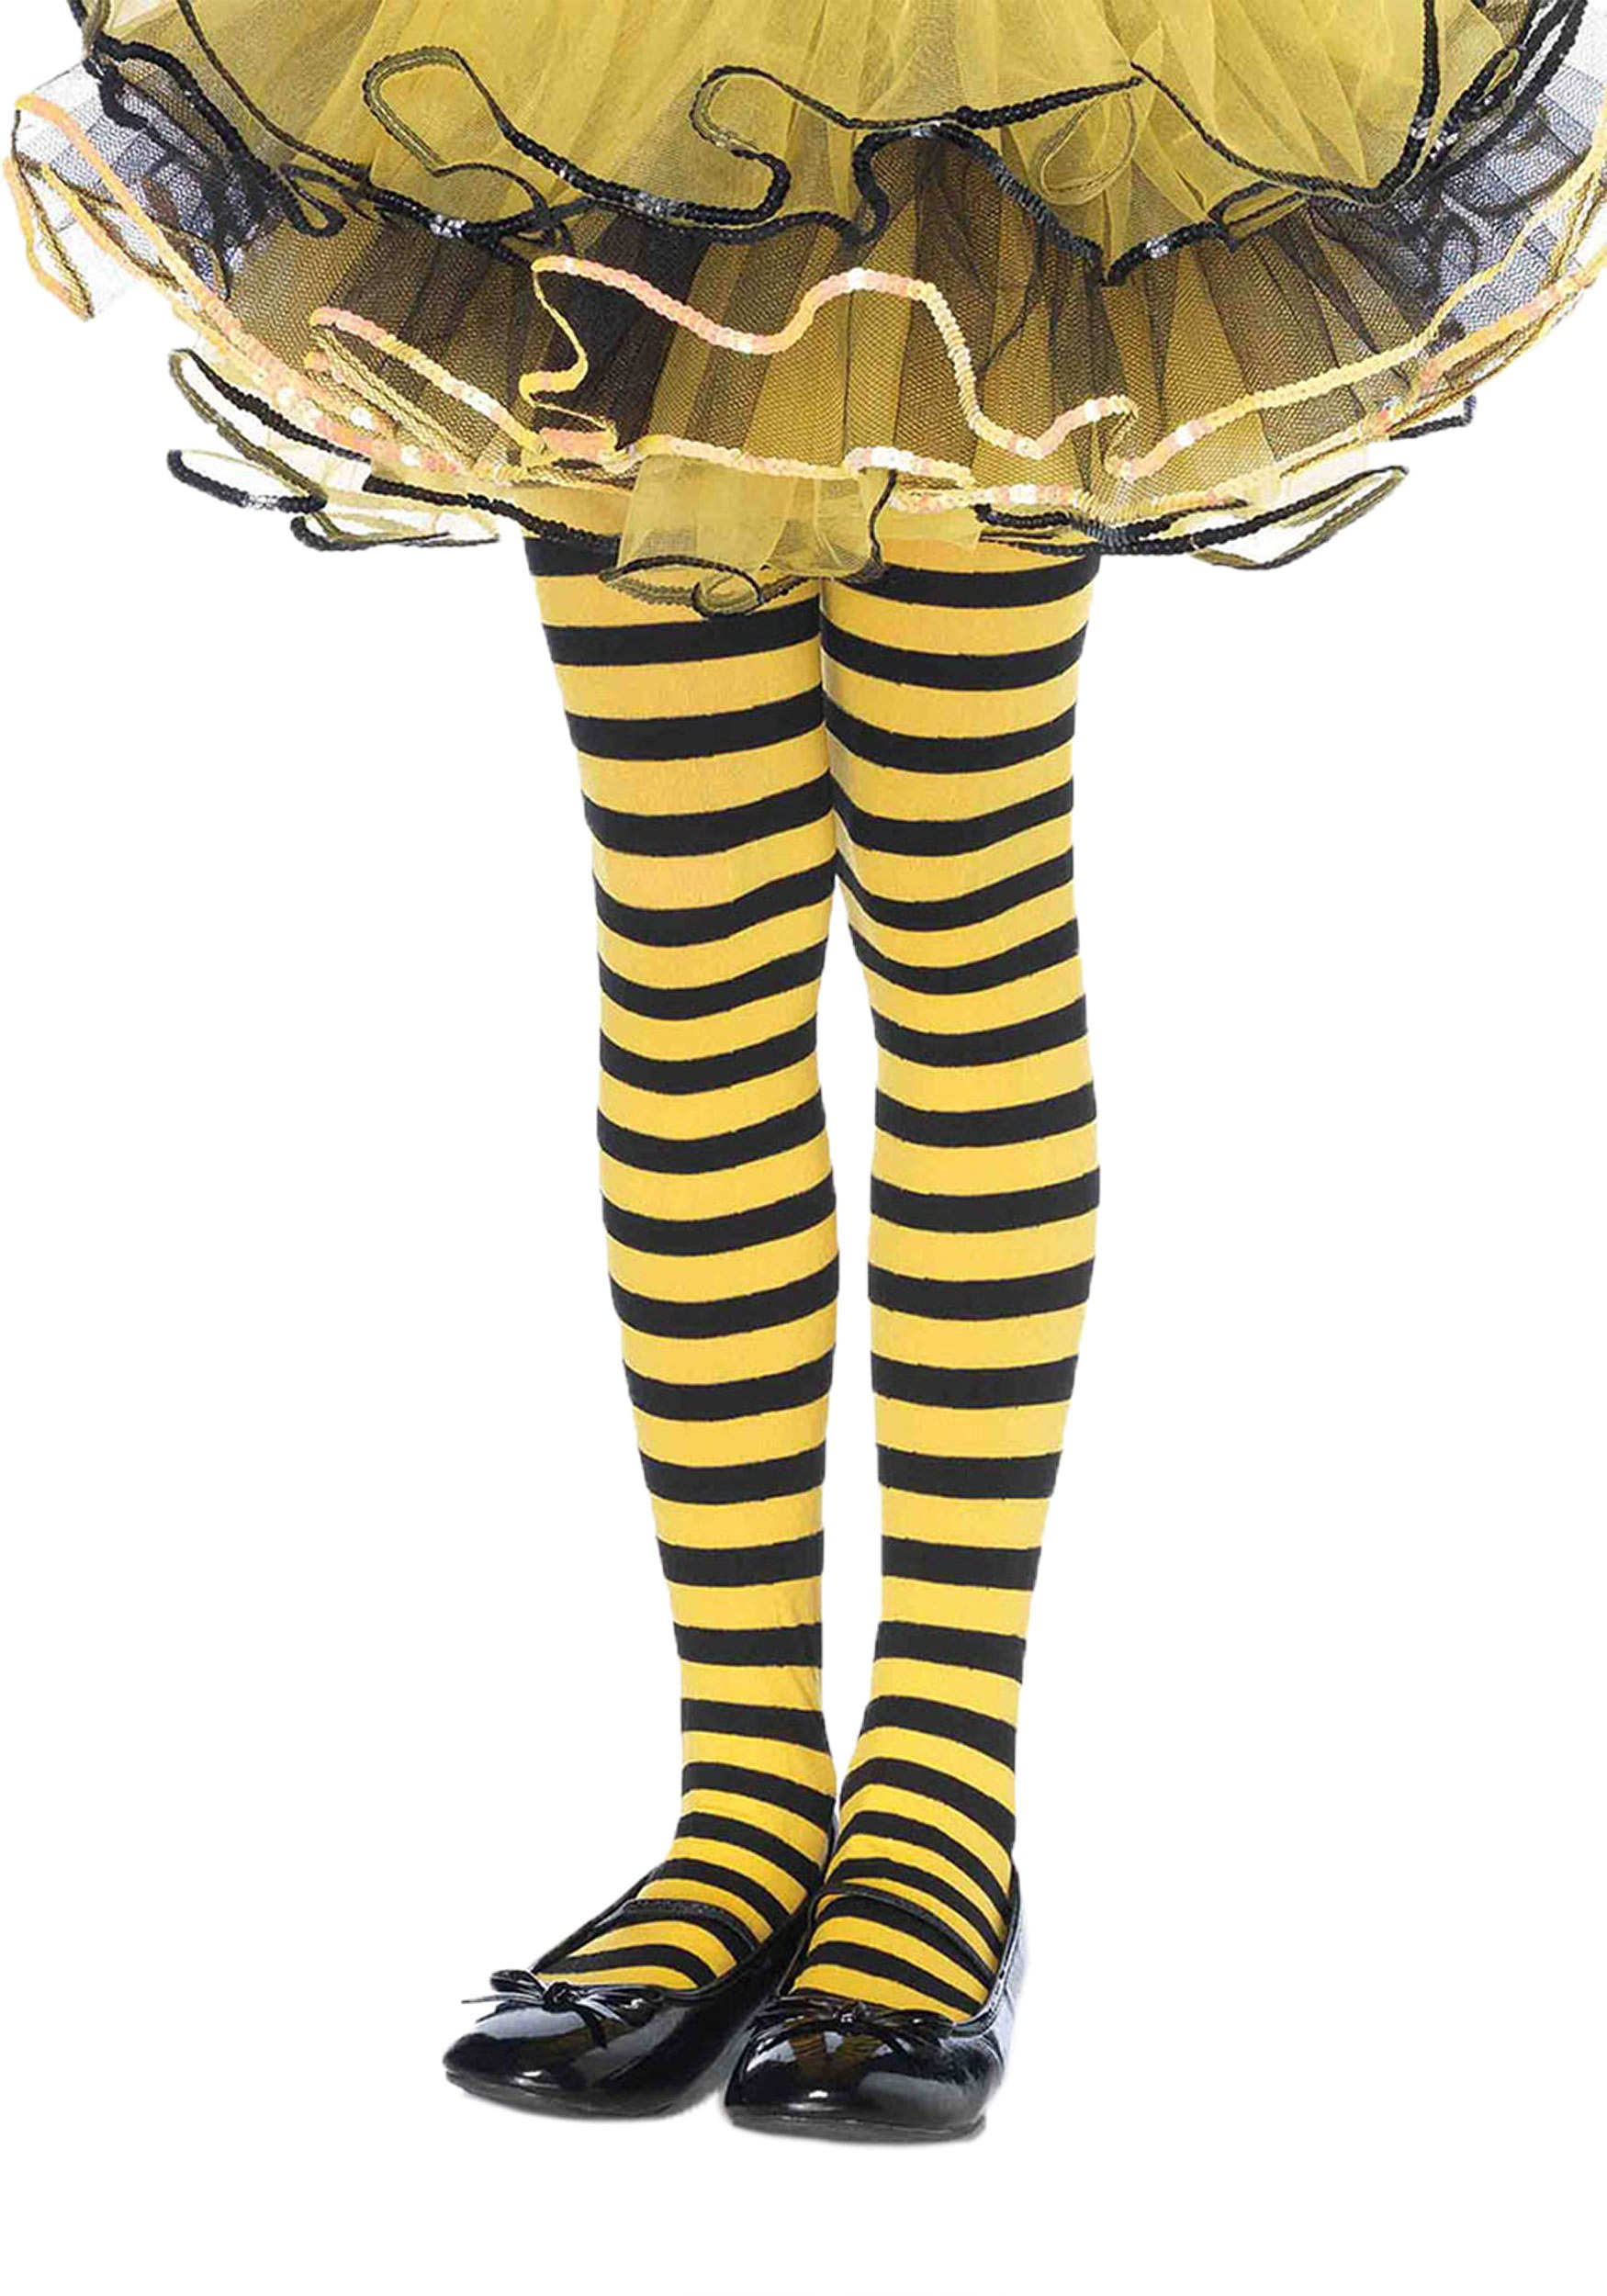 613ca38f3bb65 kids-black-and-yellow-striped-tights.jpg